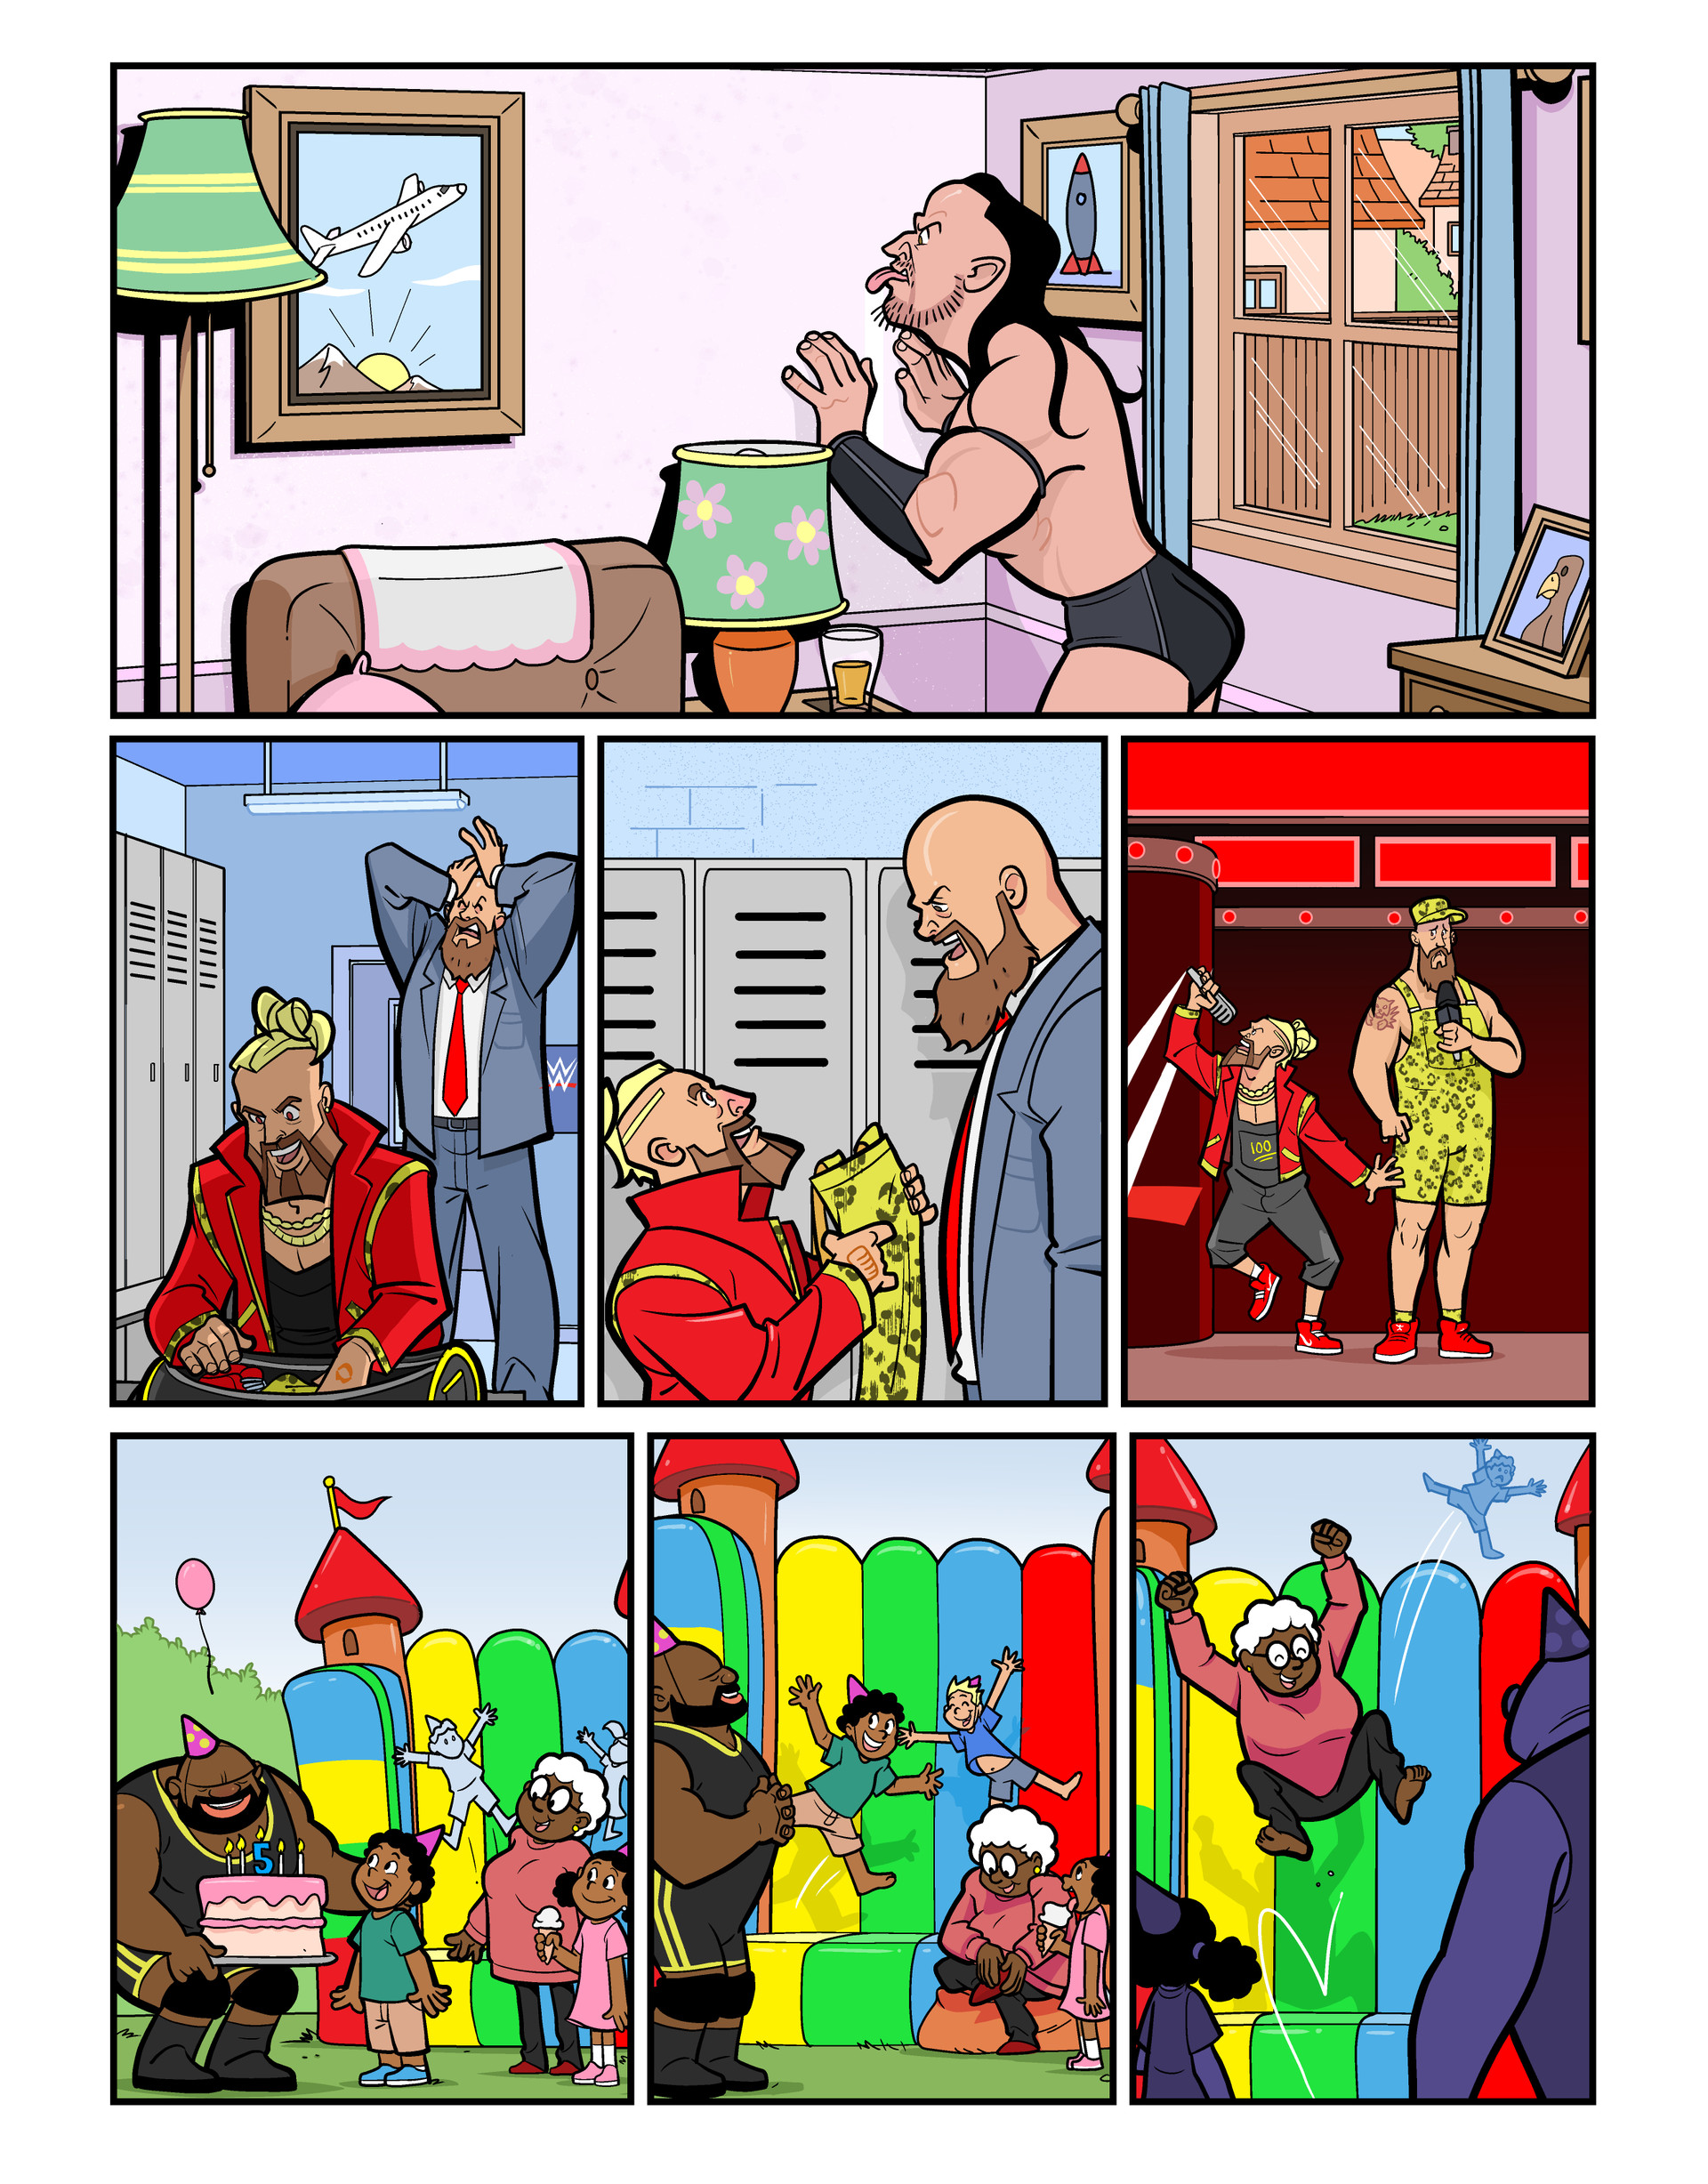 WWE Superstars comic strips for WWE Kids Magazine #126